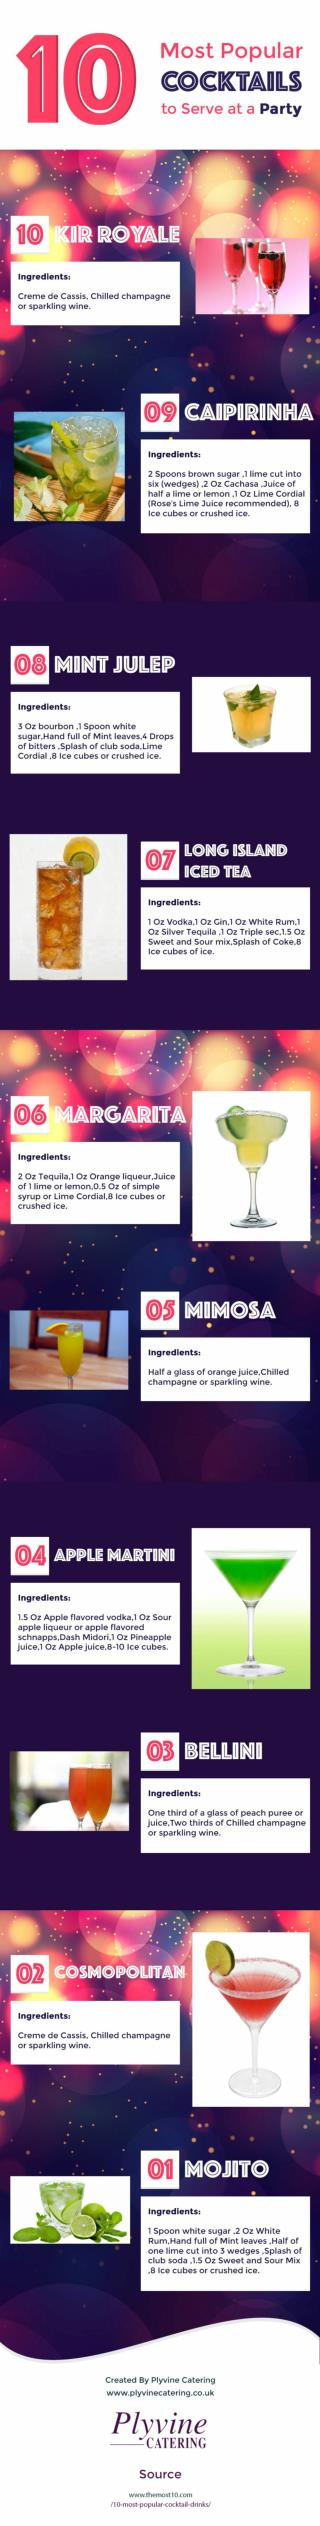 The 10 Most Popular Cocktails to Serve at a Party